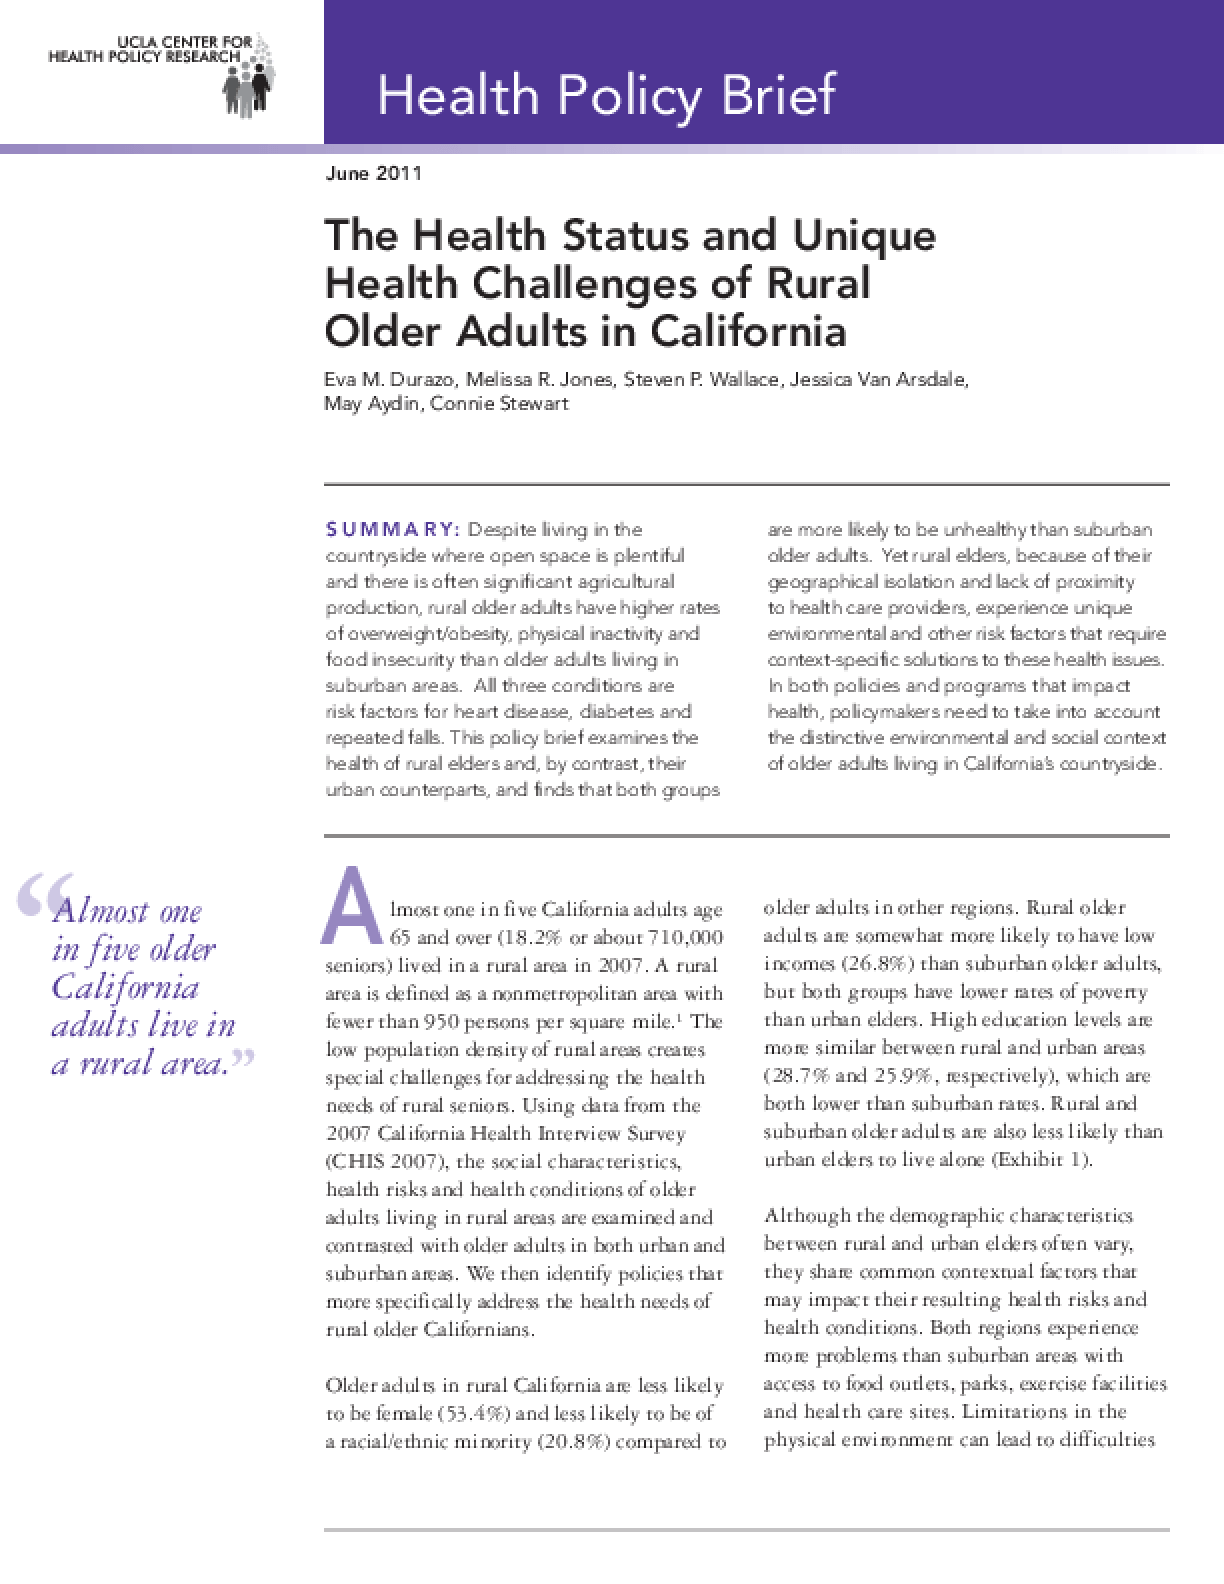 The Health Status and Unique Health Challenges of Rural Older Adults in California